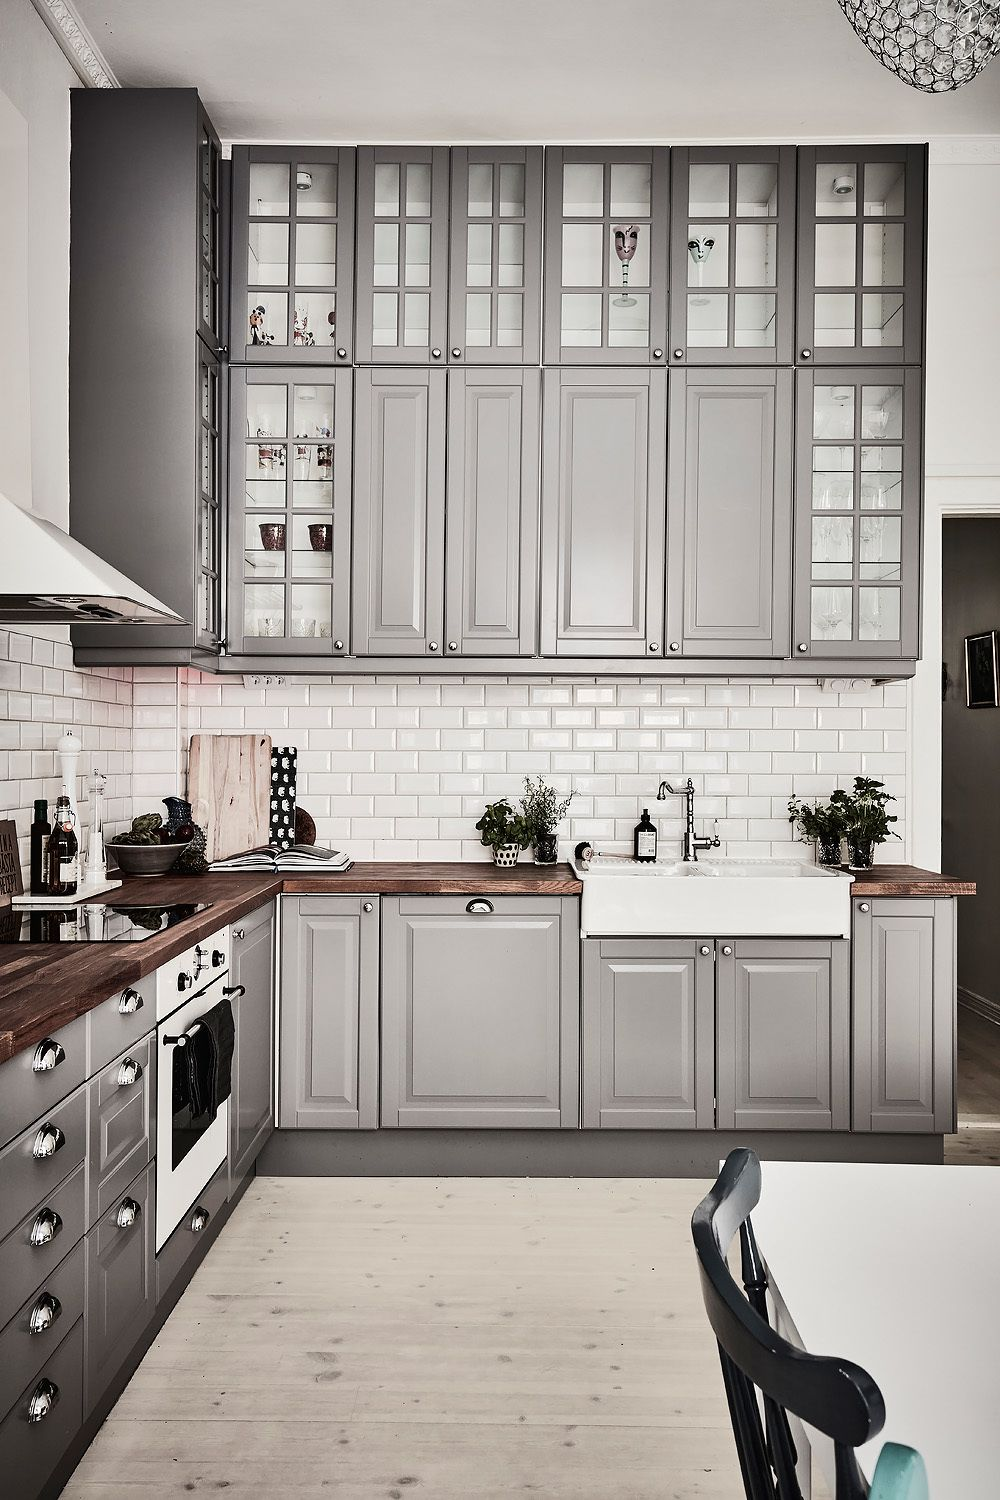 Inspiring Kitchens You Wont Believe Are IKEA Decorating Tips - Light grey kitchen cabinets ikea